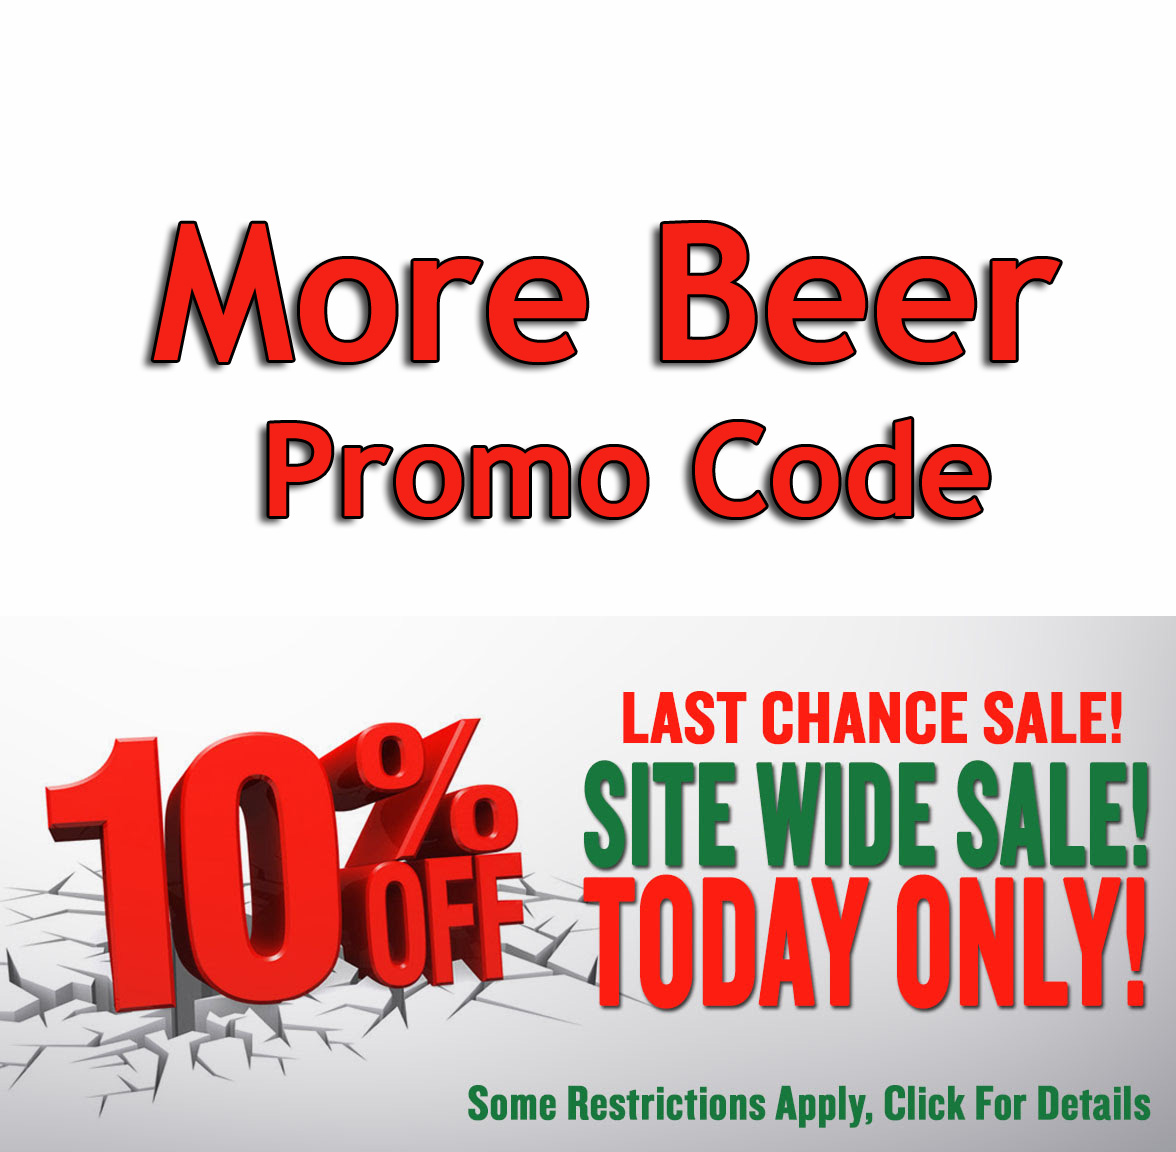 Home Wine Making Coupon Codes for Save 10% Site Wide at MoreBeer! Coupon Code